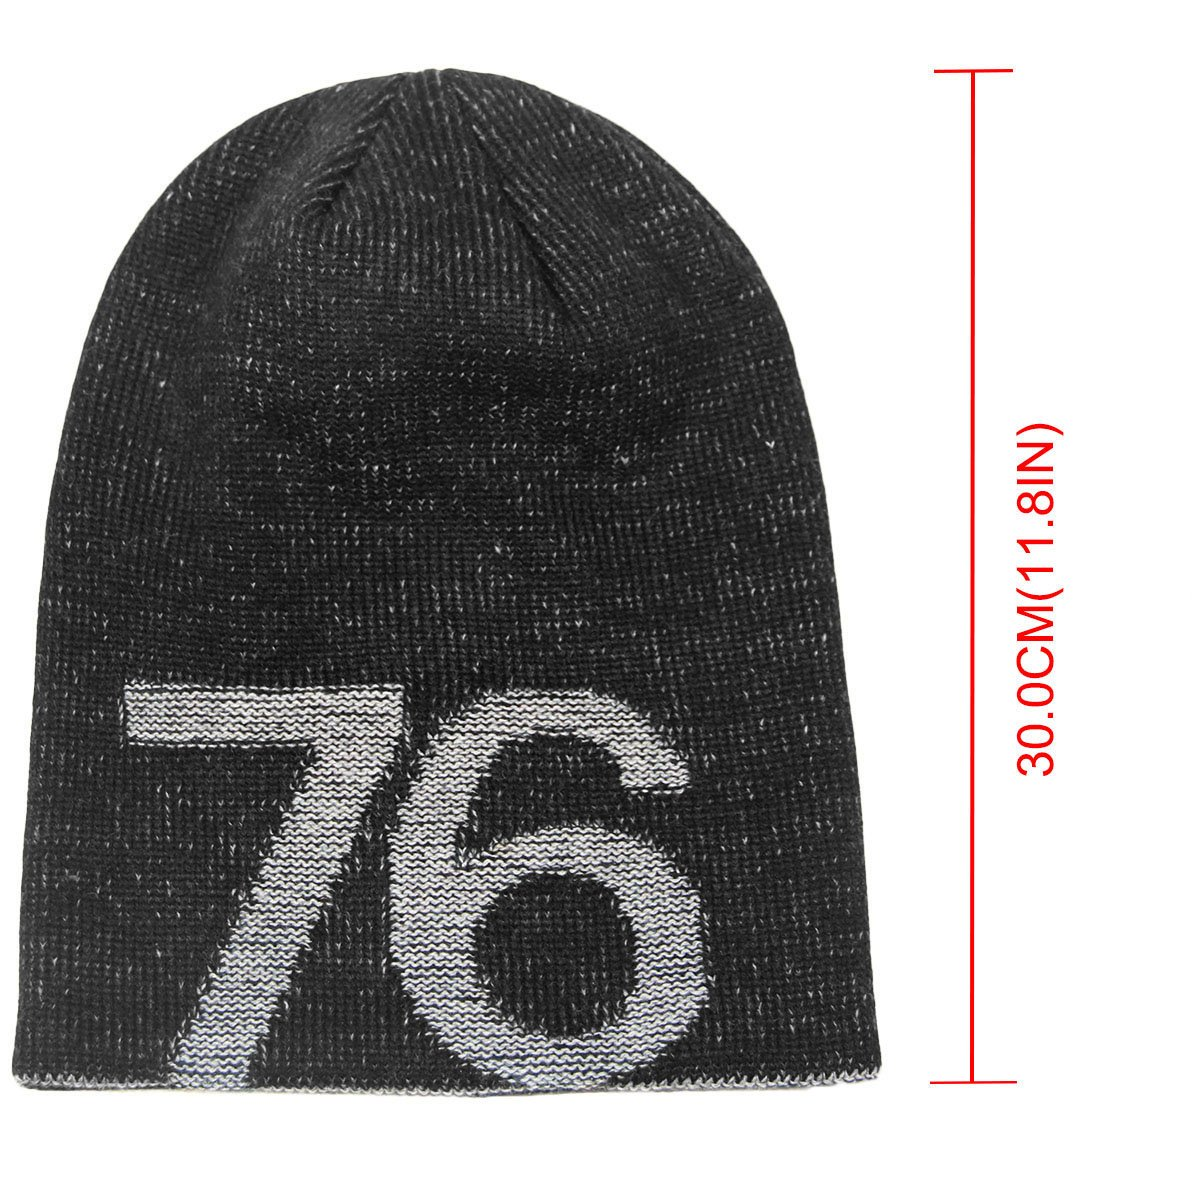 f9d3f75cd4065 Amazon.com  LETHMIK 76 Winter Slouchy Beanie Hat Unisex Acrylic Knit Long  Skull Cap Black  Sports   Outdoors